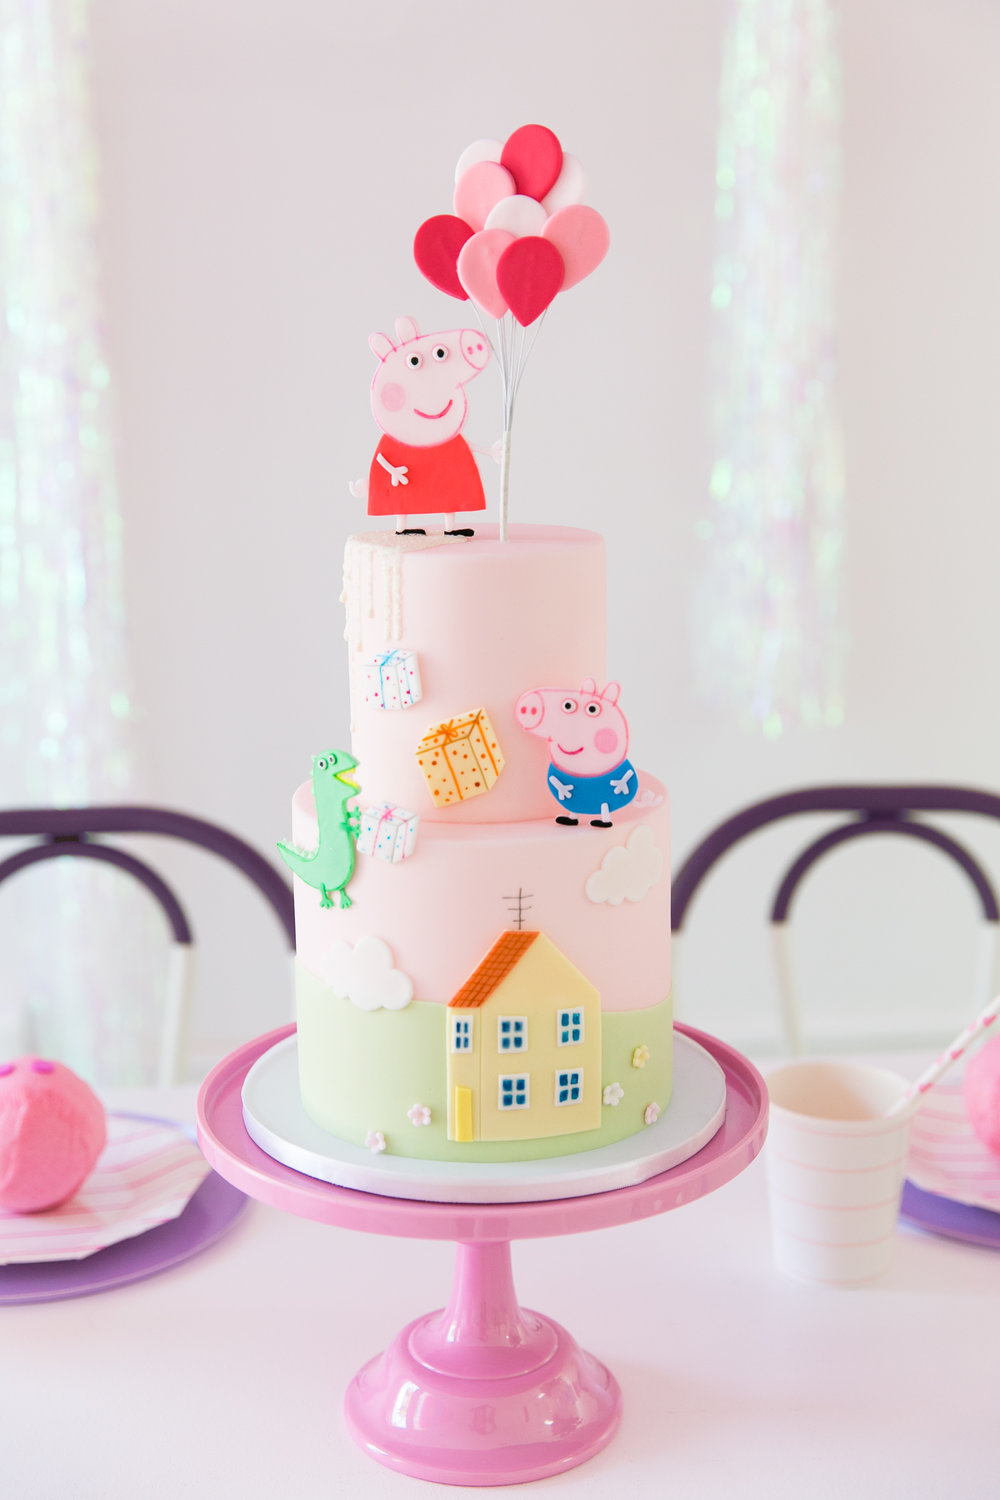 Oui Party - Peppa Pig Party - Peppa Pig Cake 2.jpg